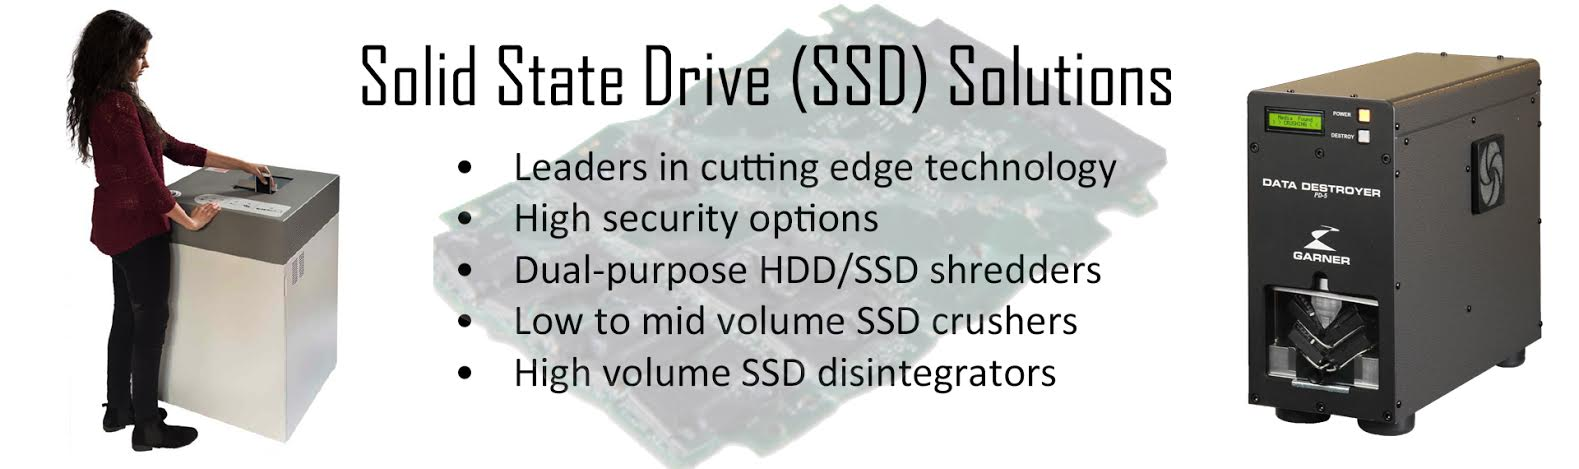 Solid State Drive (SSD) Solutions